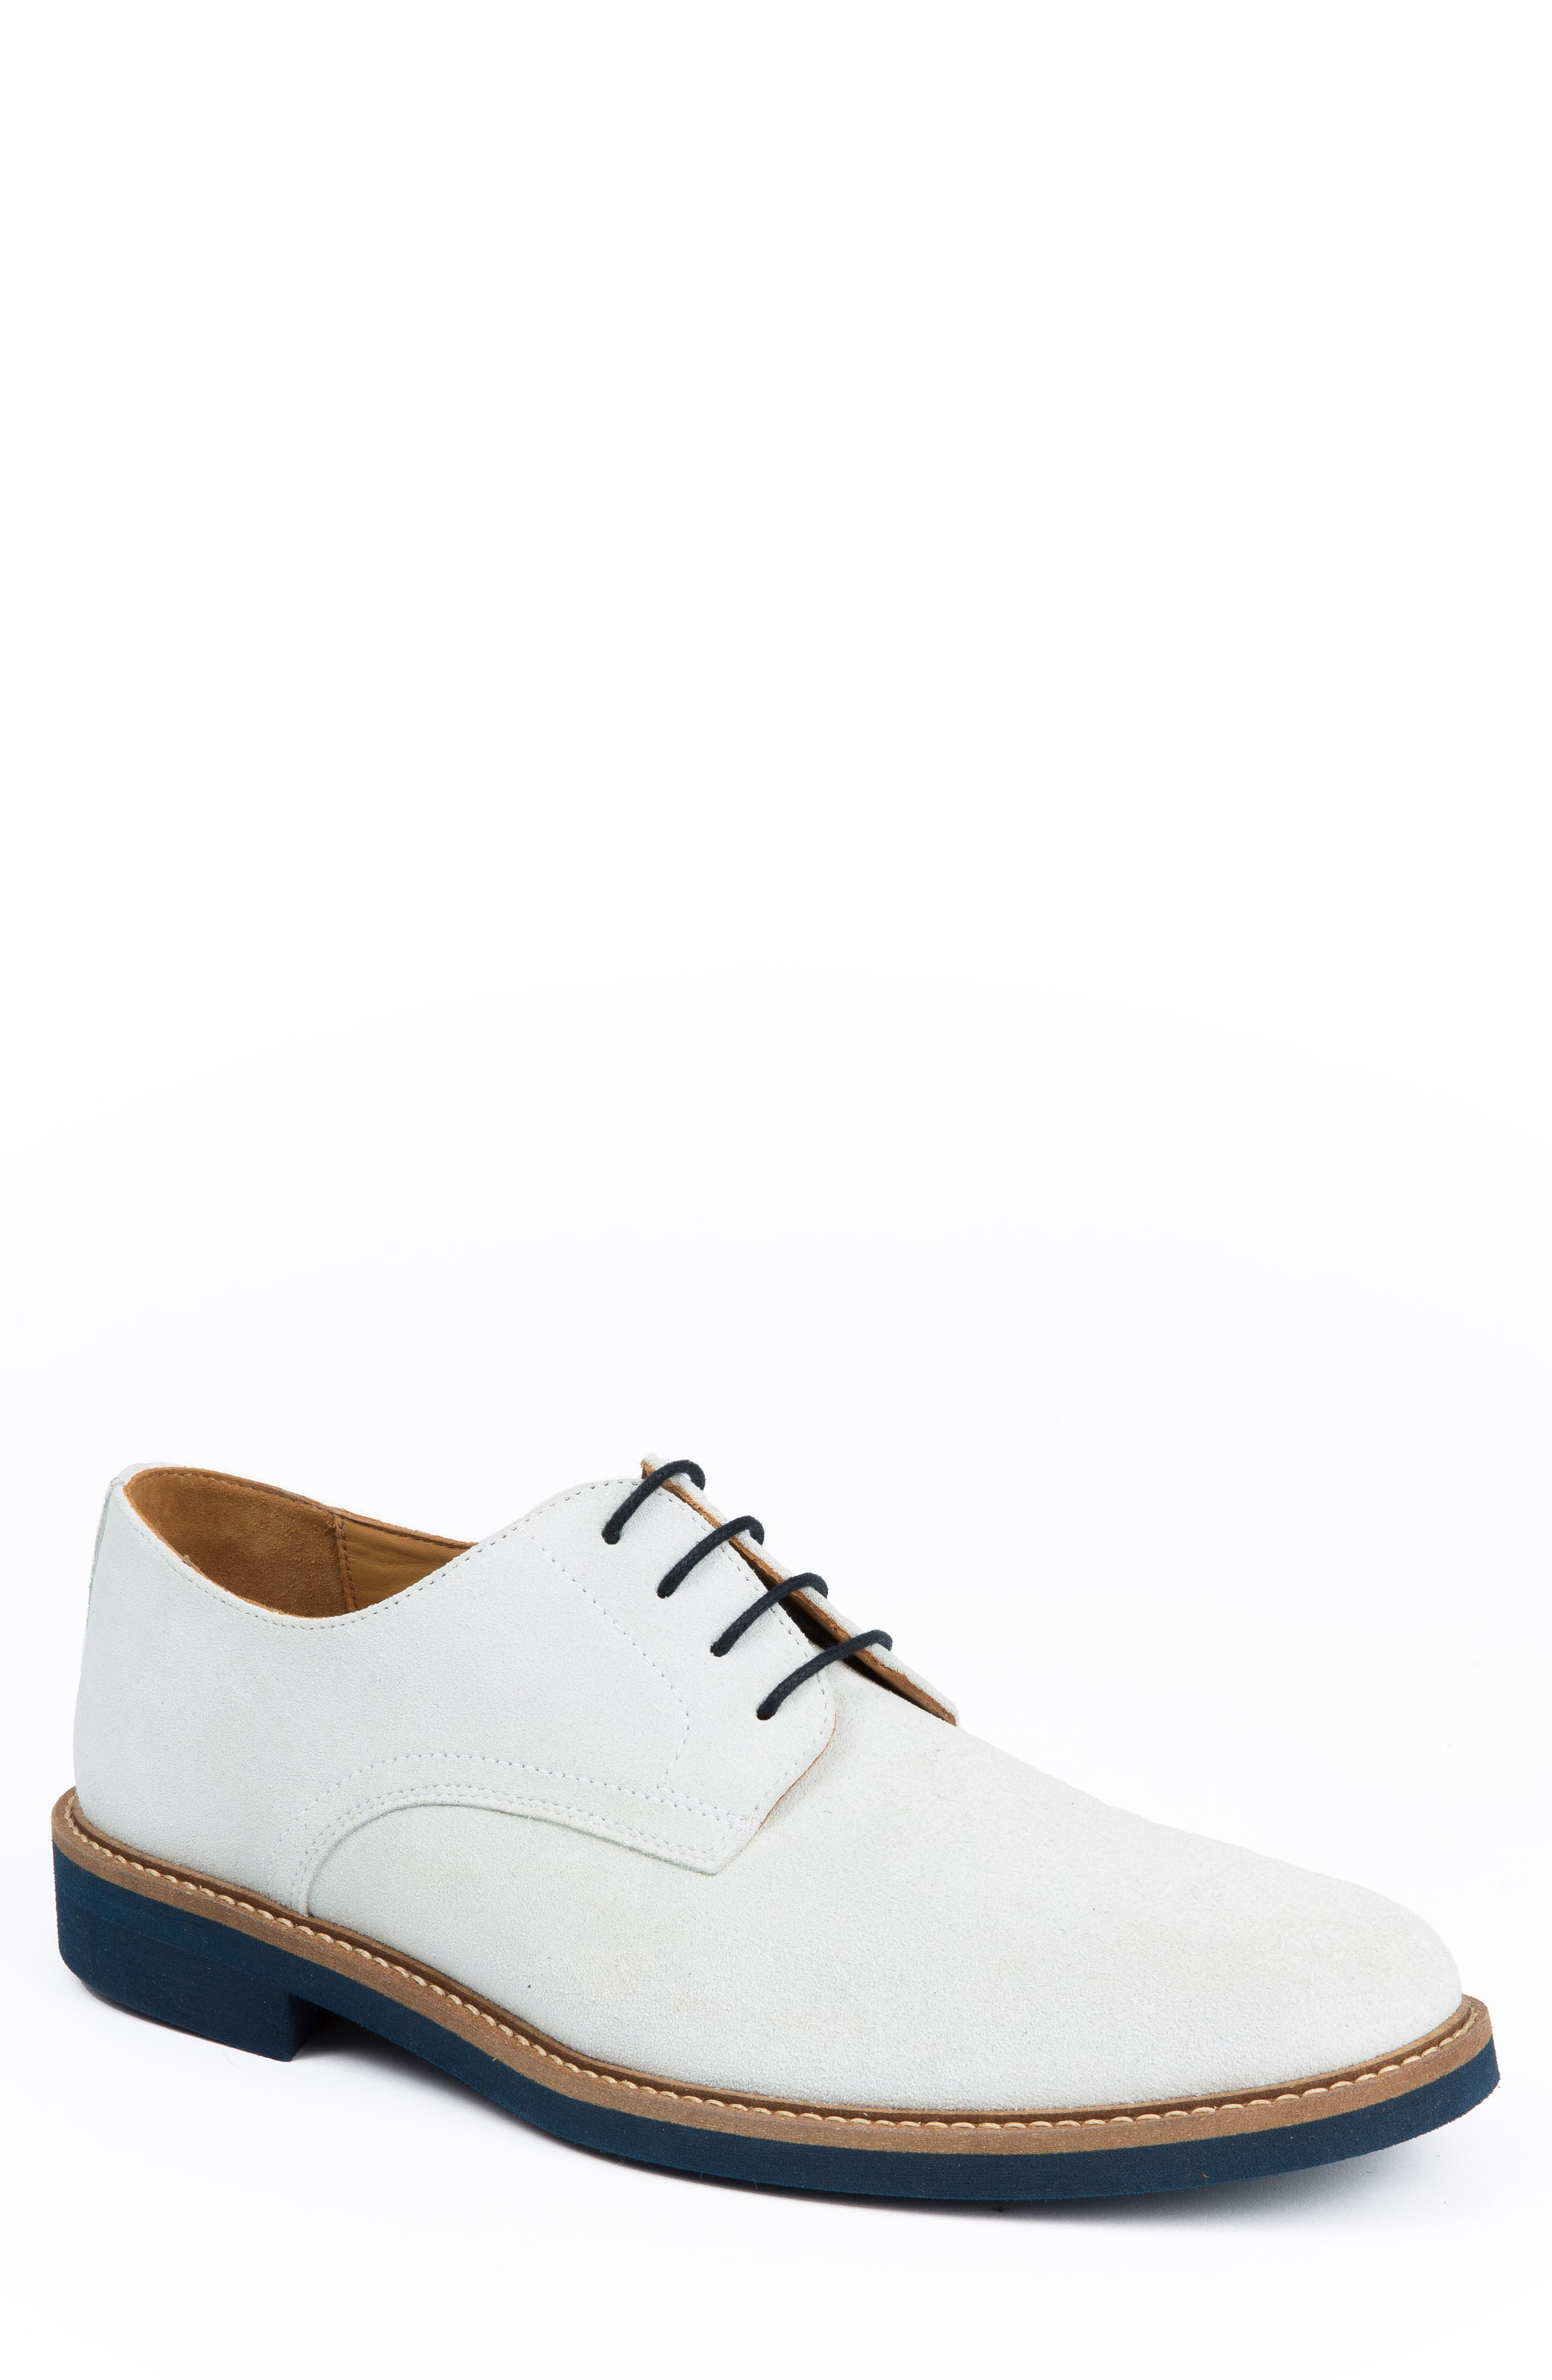 Austen Heller Buck Shoe (Men)